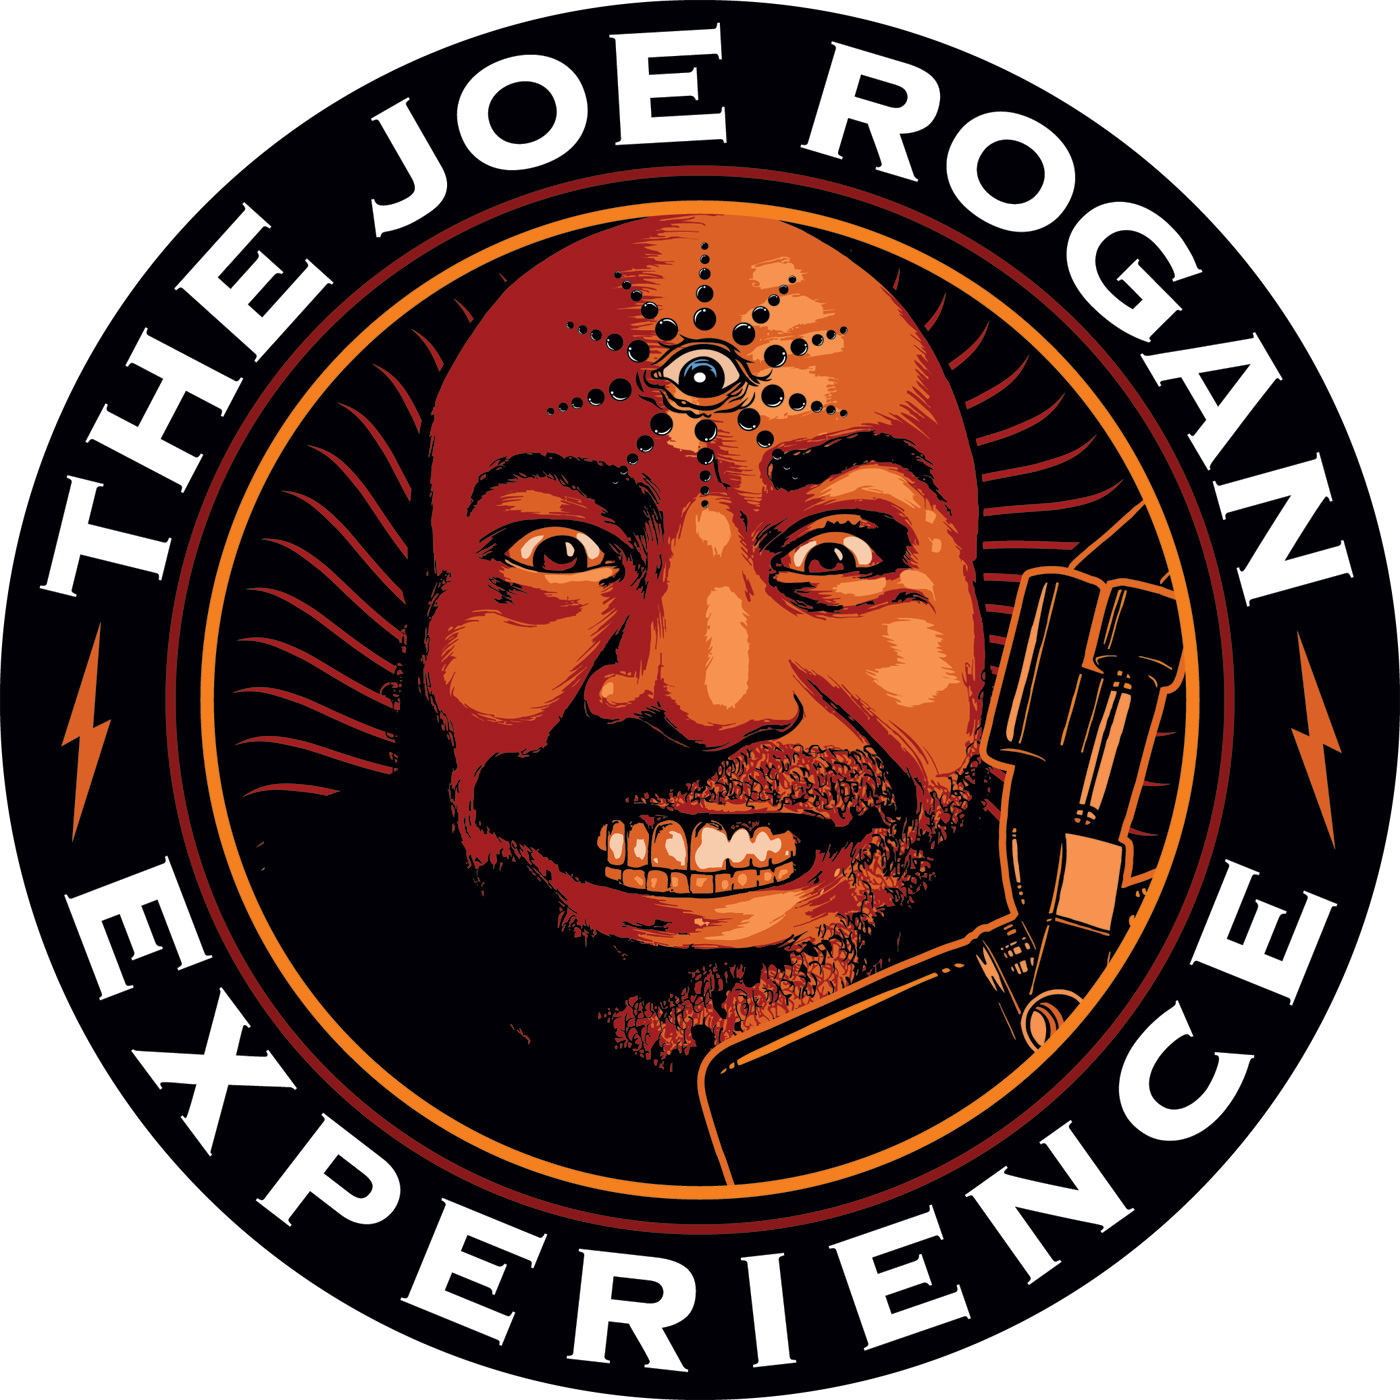 The Joe Rogan Experience PODCAST #120 - Duncan Trussell, Brian Redban